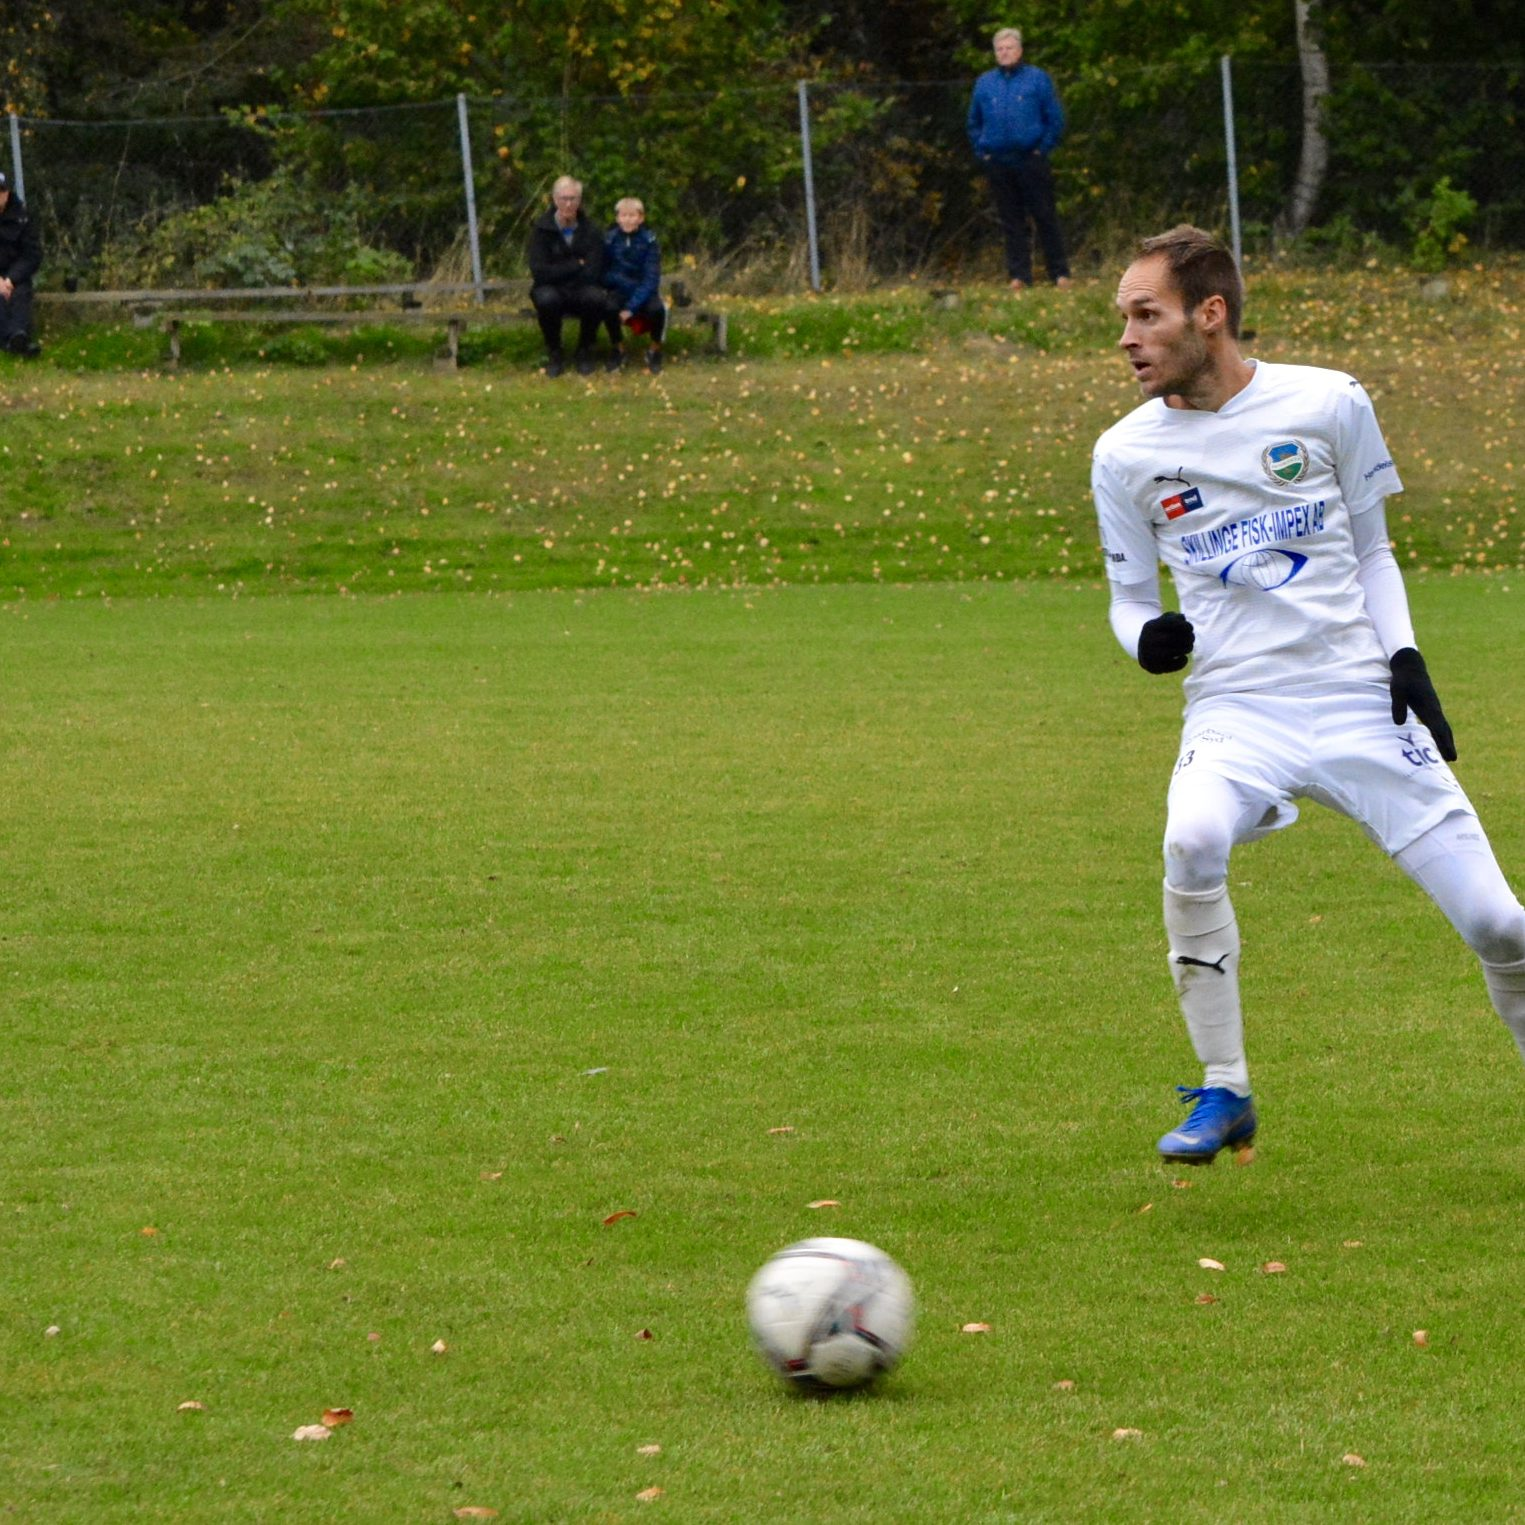 Österlen stays away in the division 2 top